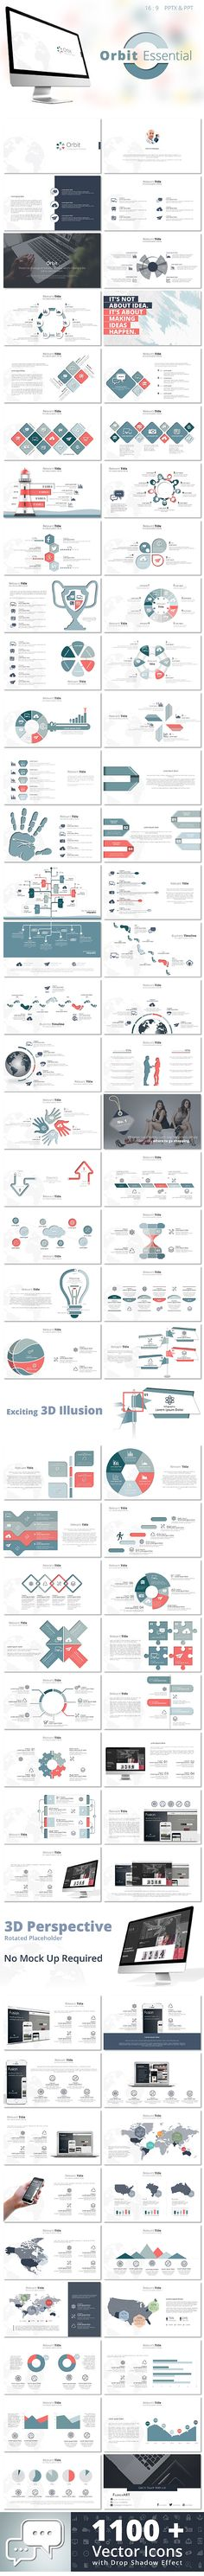 Orbit Essential PowerPoint Presentation - Business PowerPoint Templates